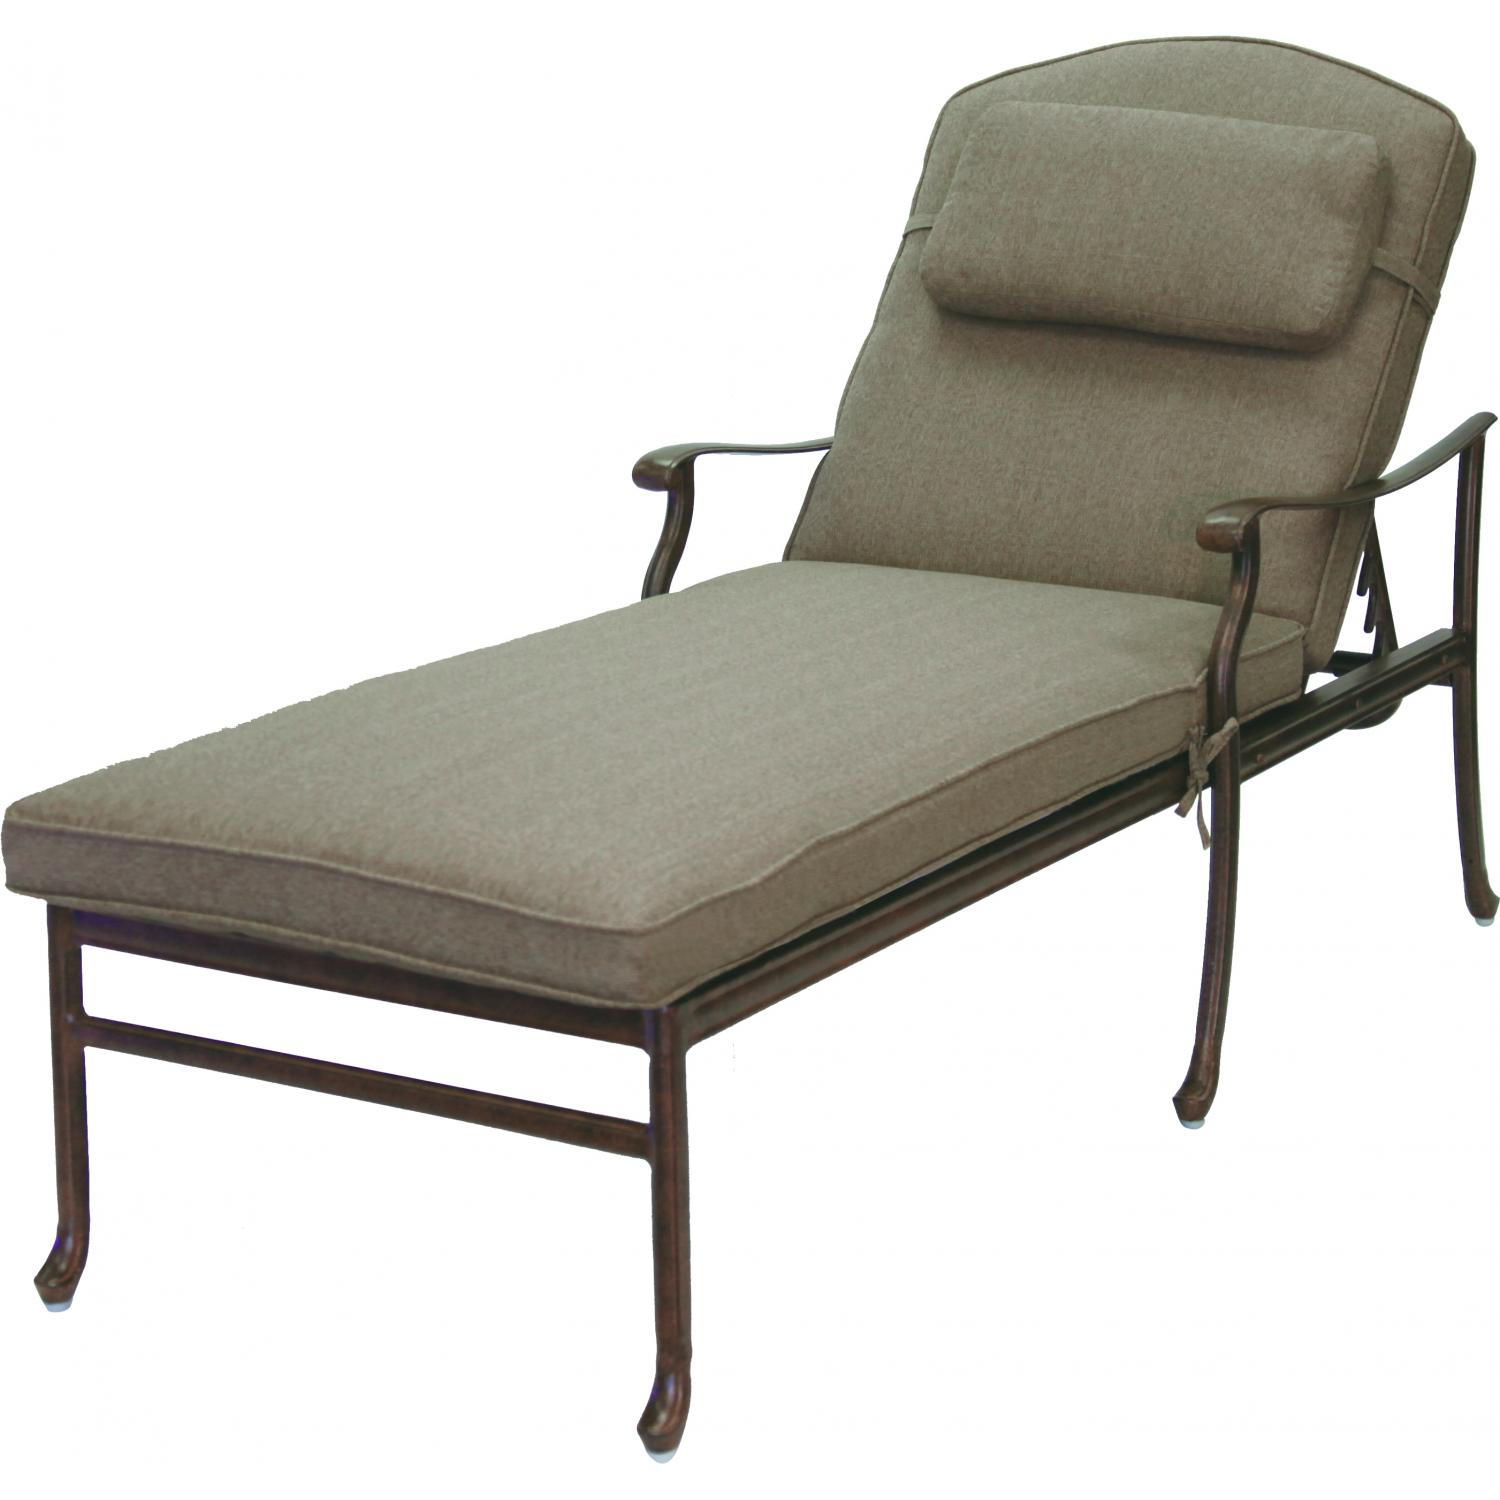 Darlee sedona cast aluminum patio chaise lounge antique for Antique chaise lounges